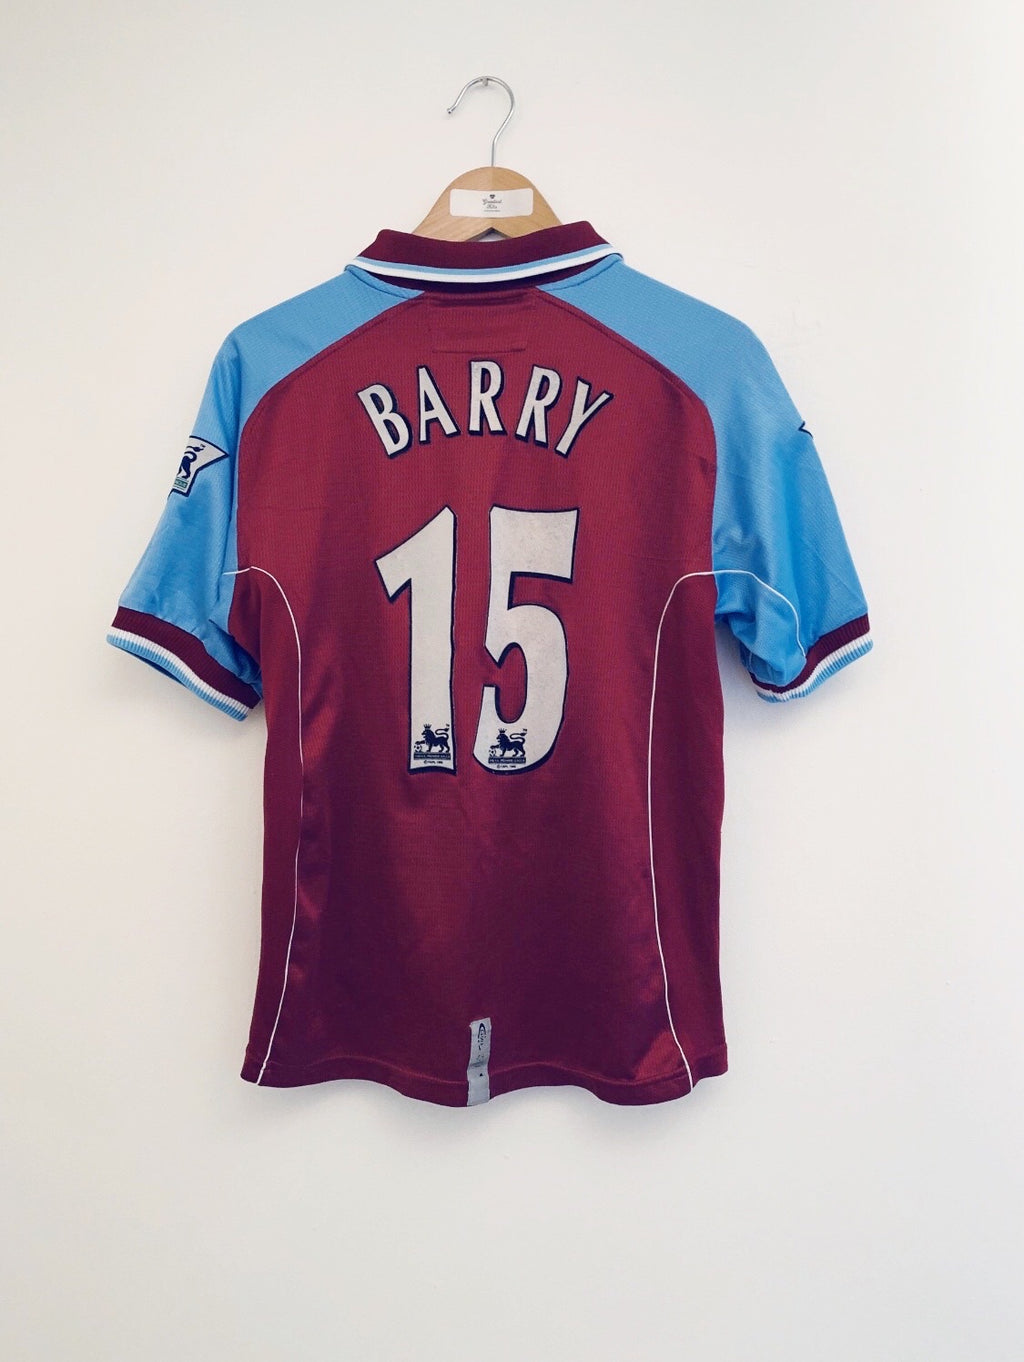 2000/01 Aston Villa Home Shirt Barry #15 (S) 8.5/10